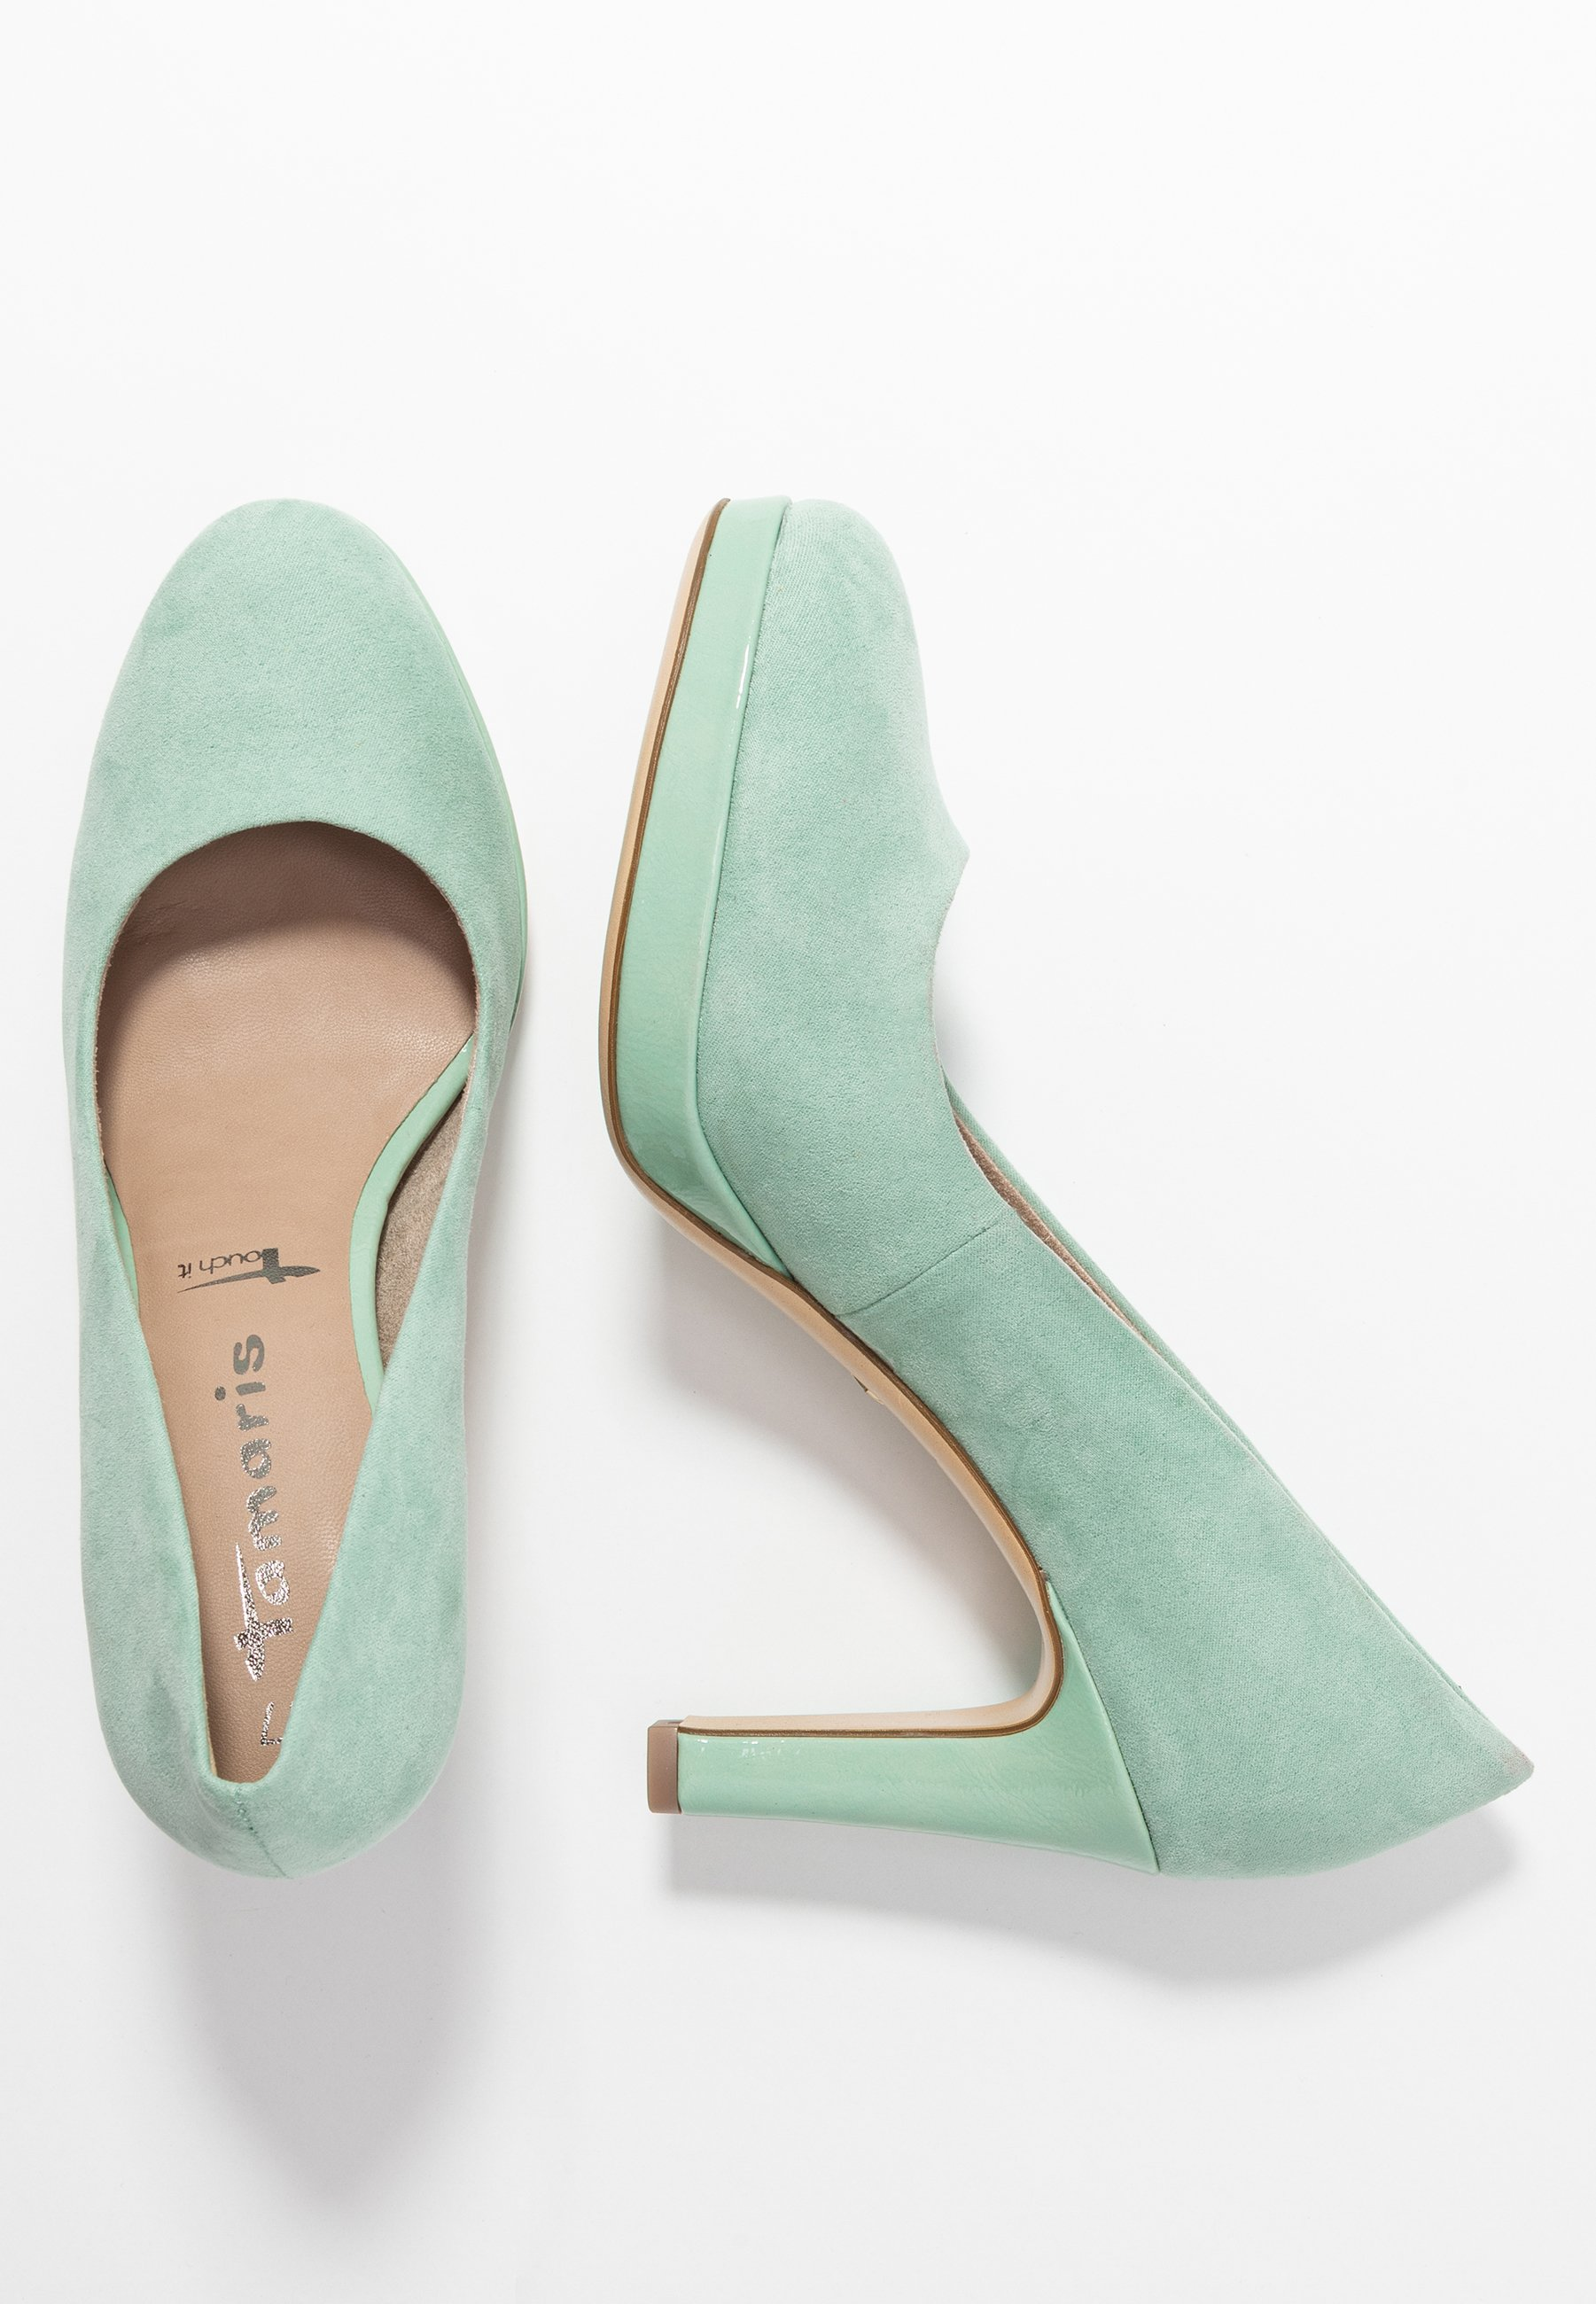 WOMS COURT SHOE Klassiska pumps mint